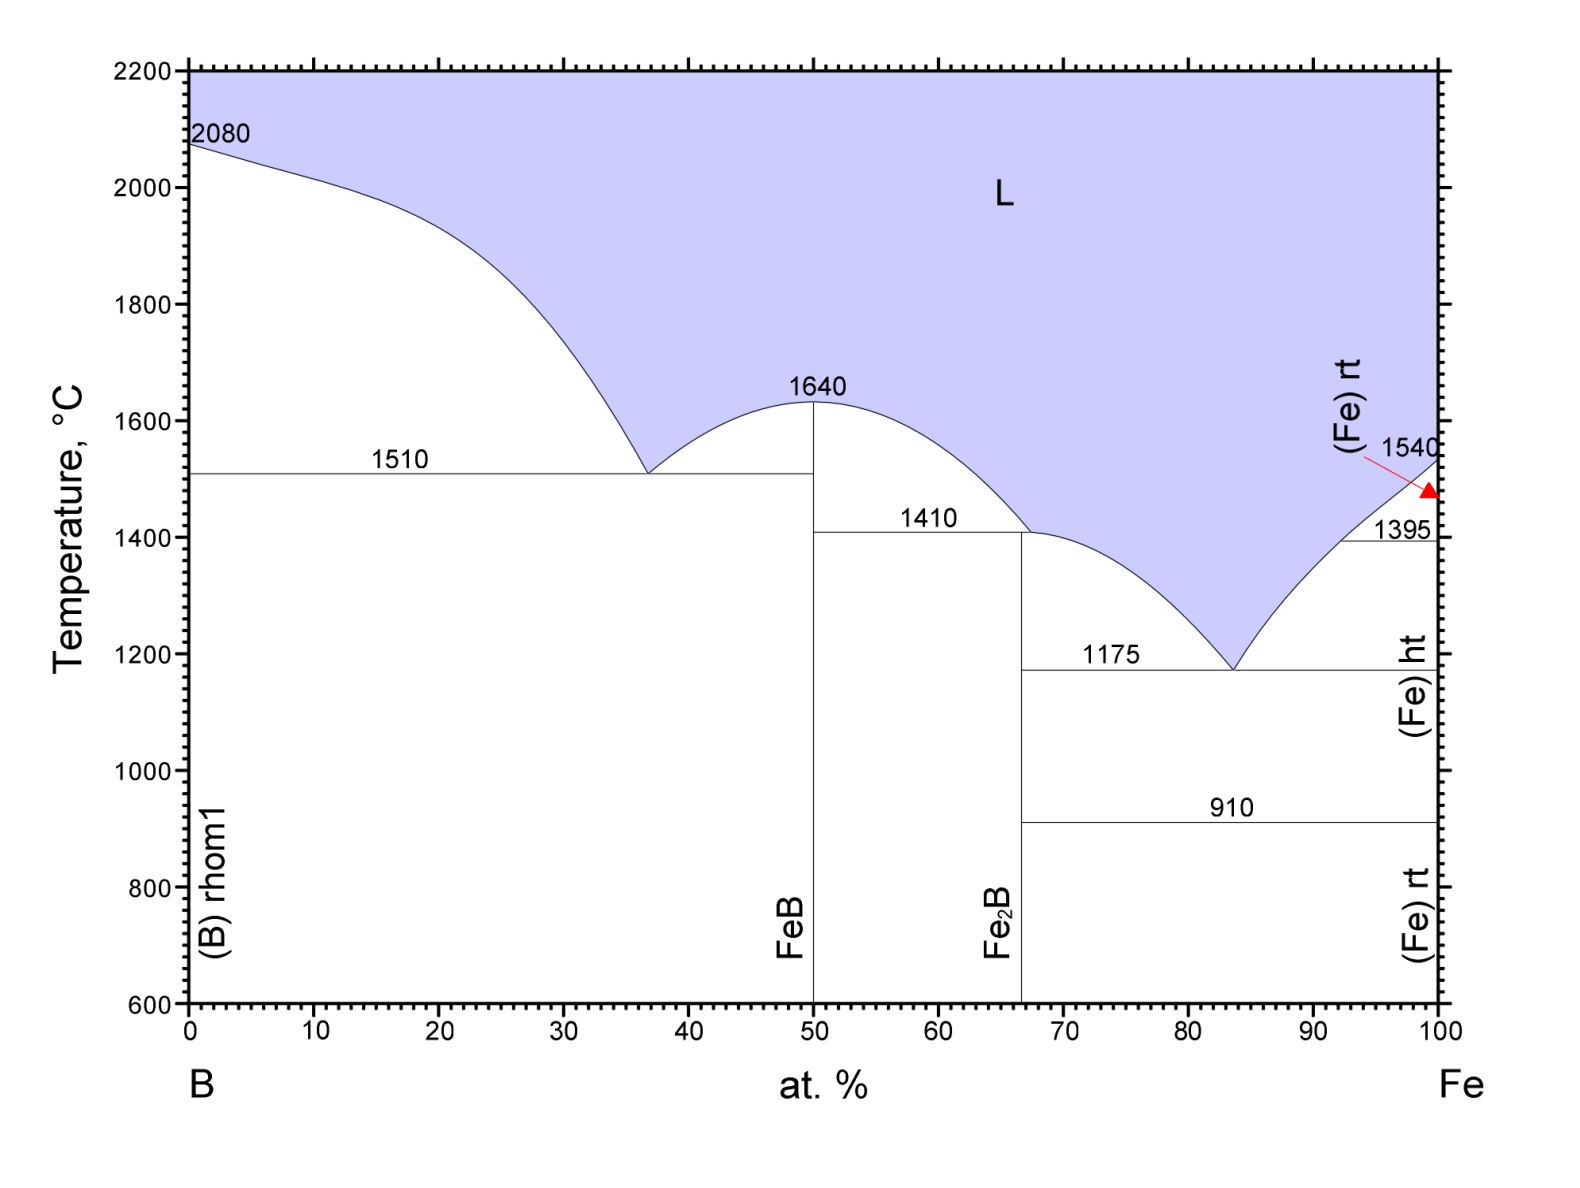 hight resolution of b fe png123 48 kb phase diagrams